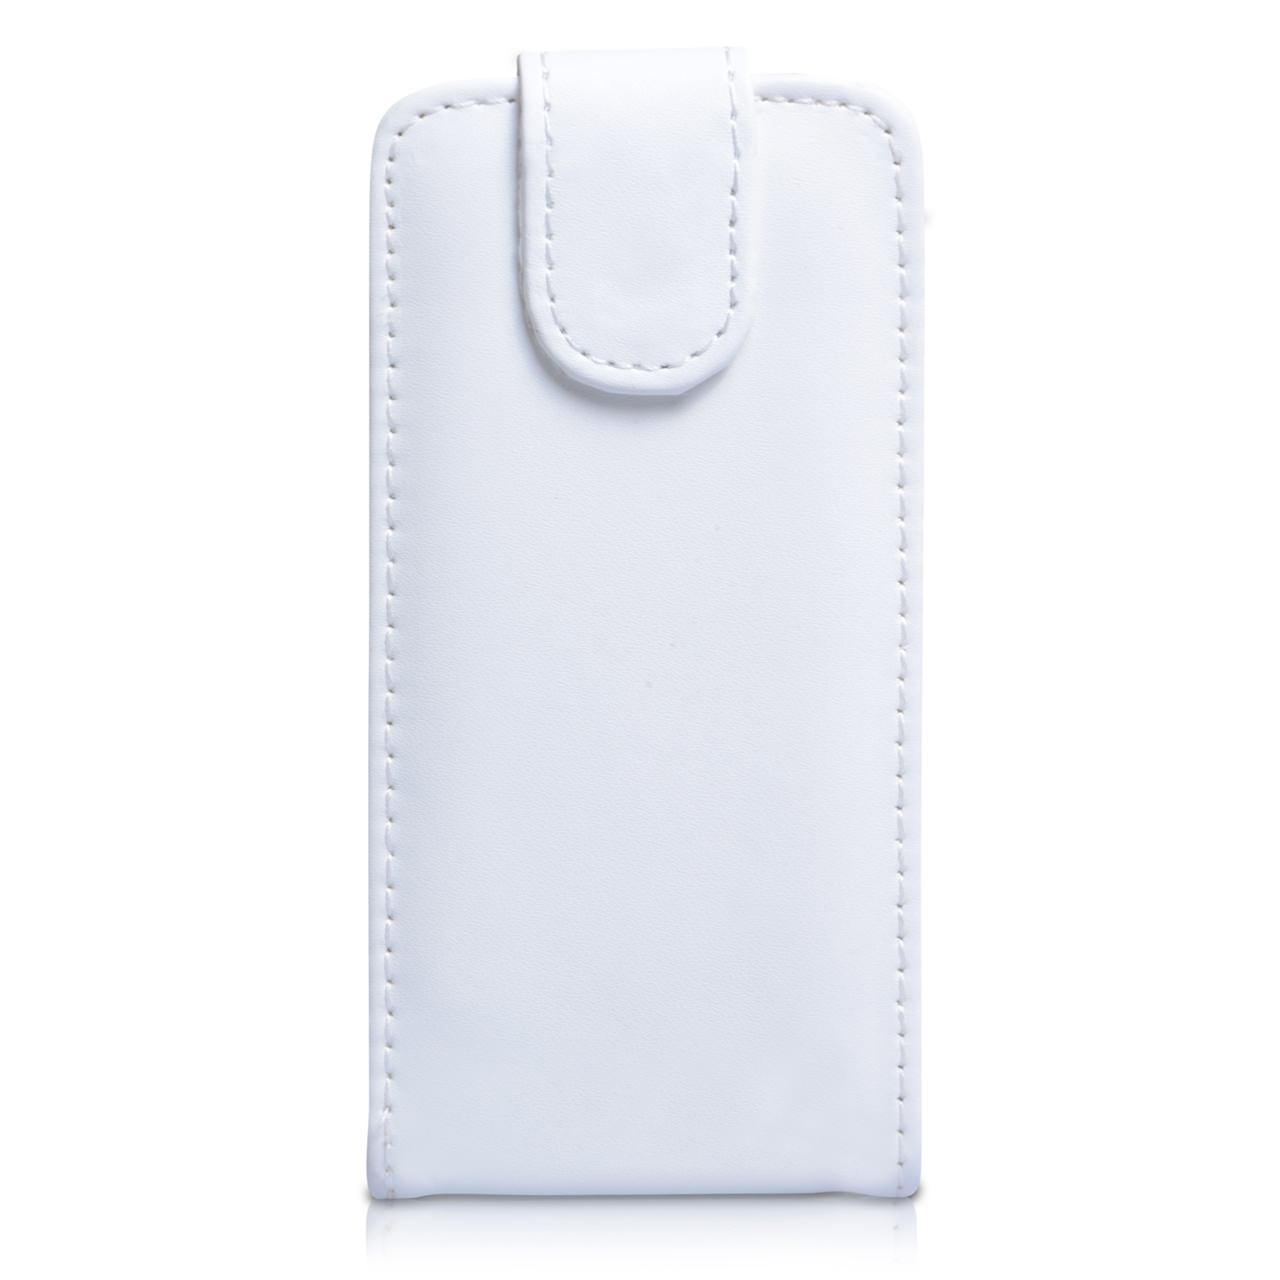 YouSave Samsung Galaxy S4 Mini Leather Effect Flip Case - White